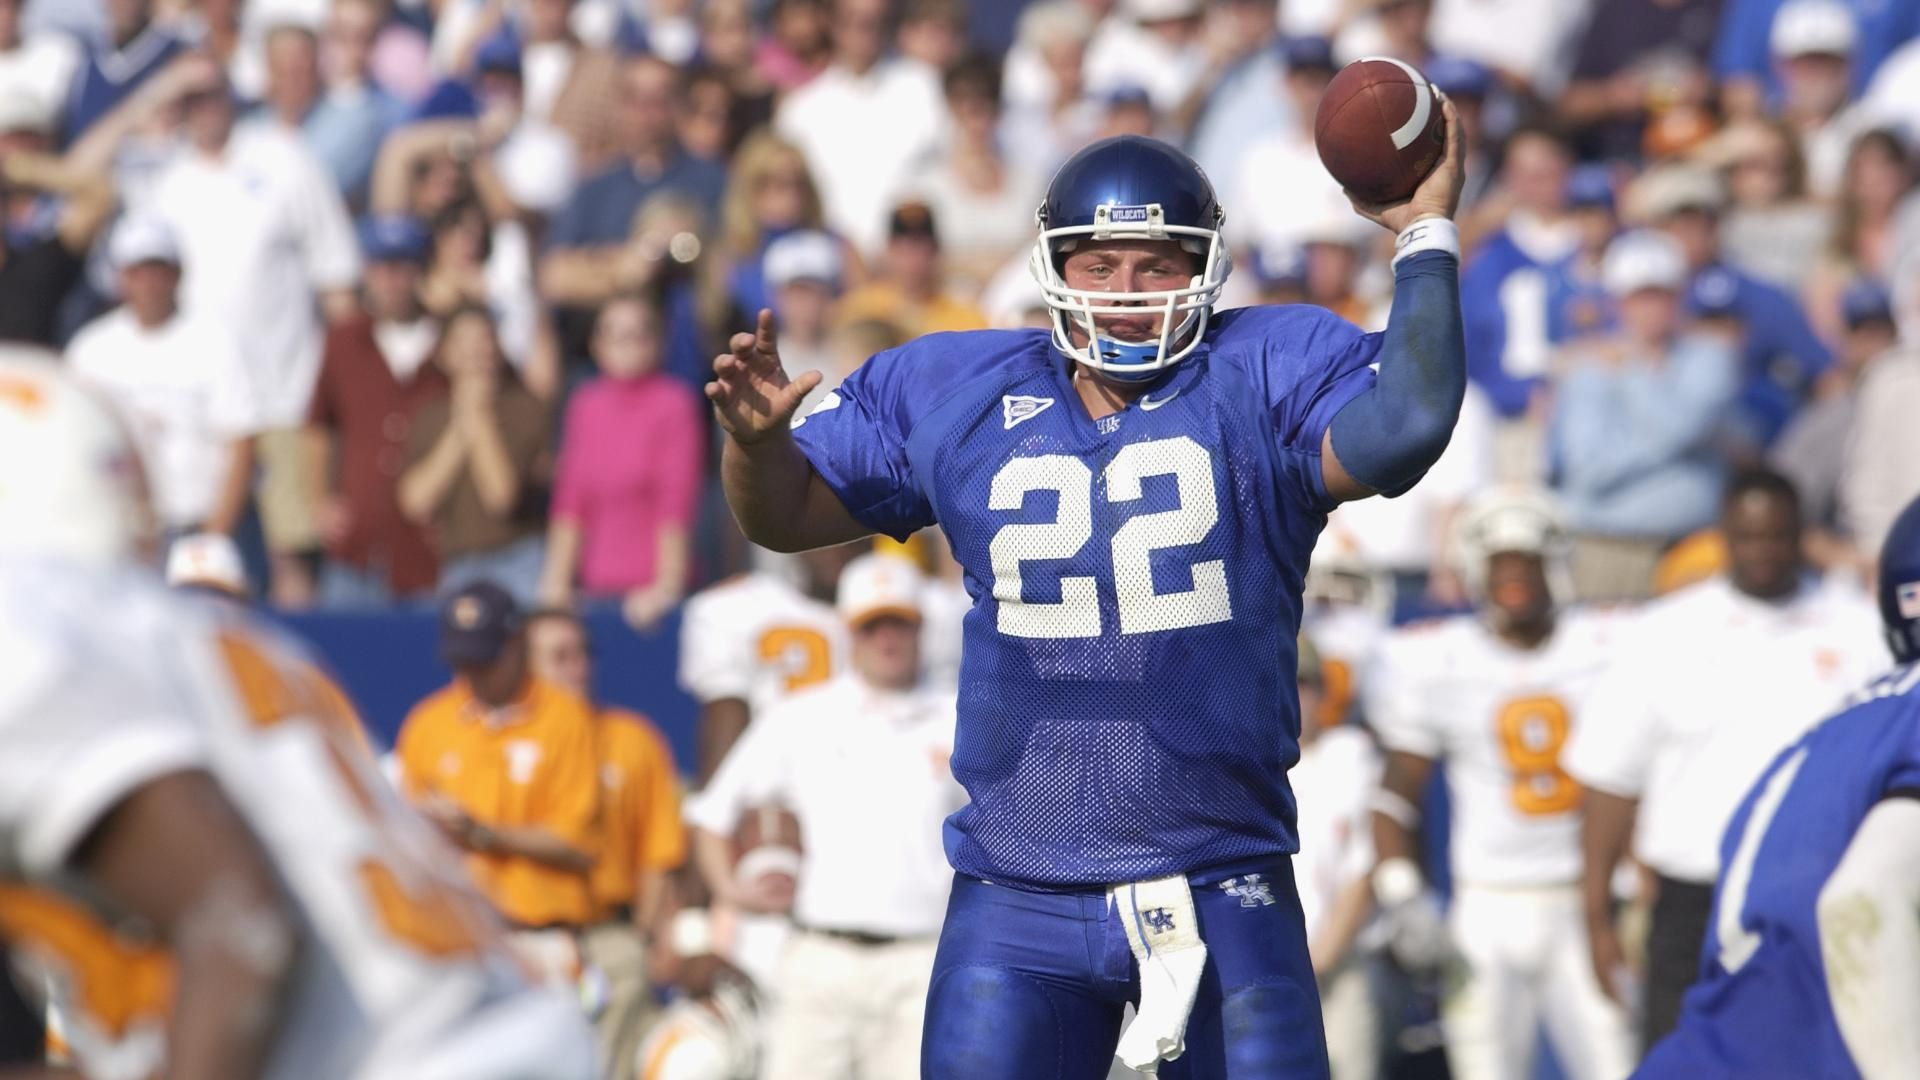 Jared Lorenzen to be inducted into Hall of Fame tomorrow ...